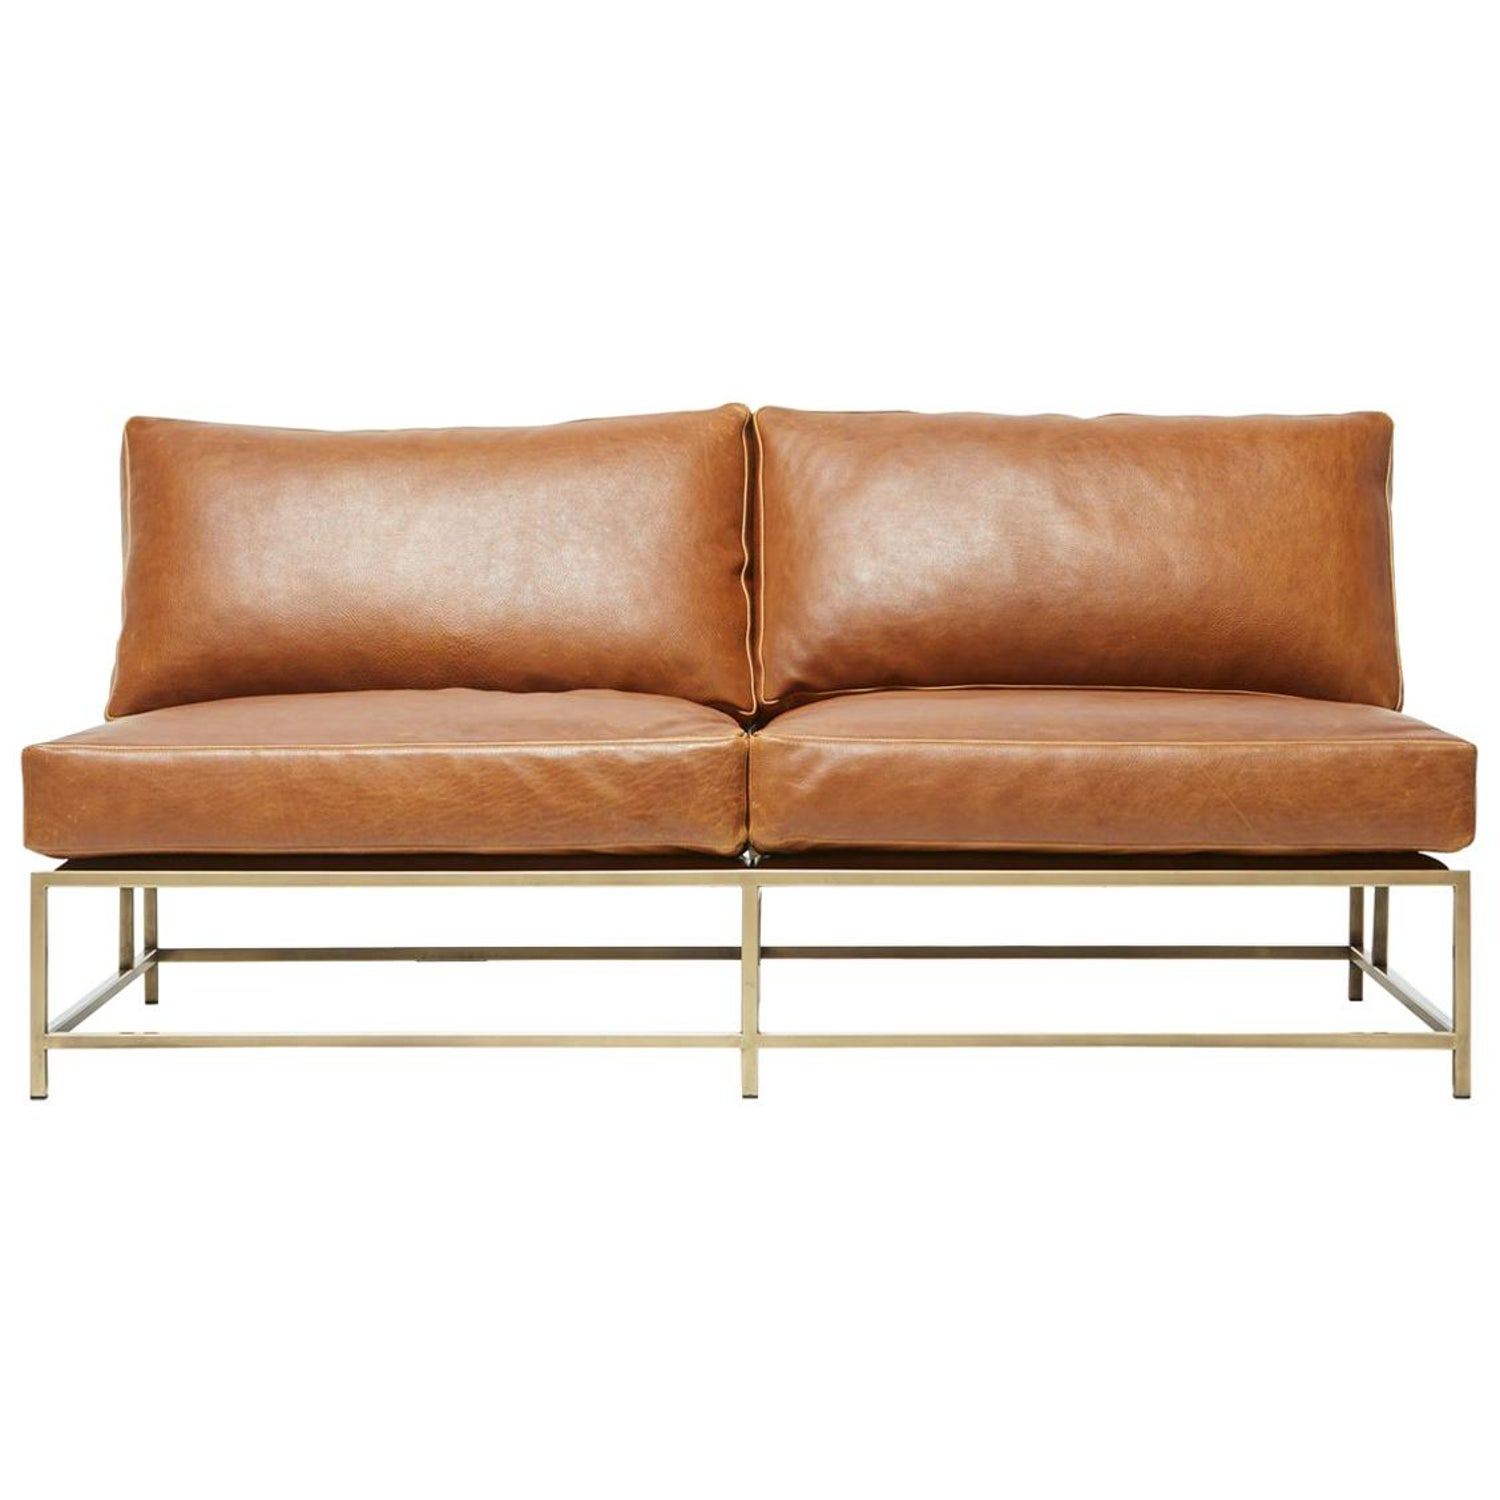 Astonishing Potomac Tan Leather And Antique Brass Loveseat Bralicious Painted Fabric Chair Ideas Braliciousco